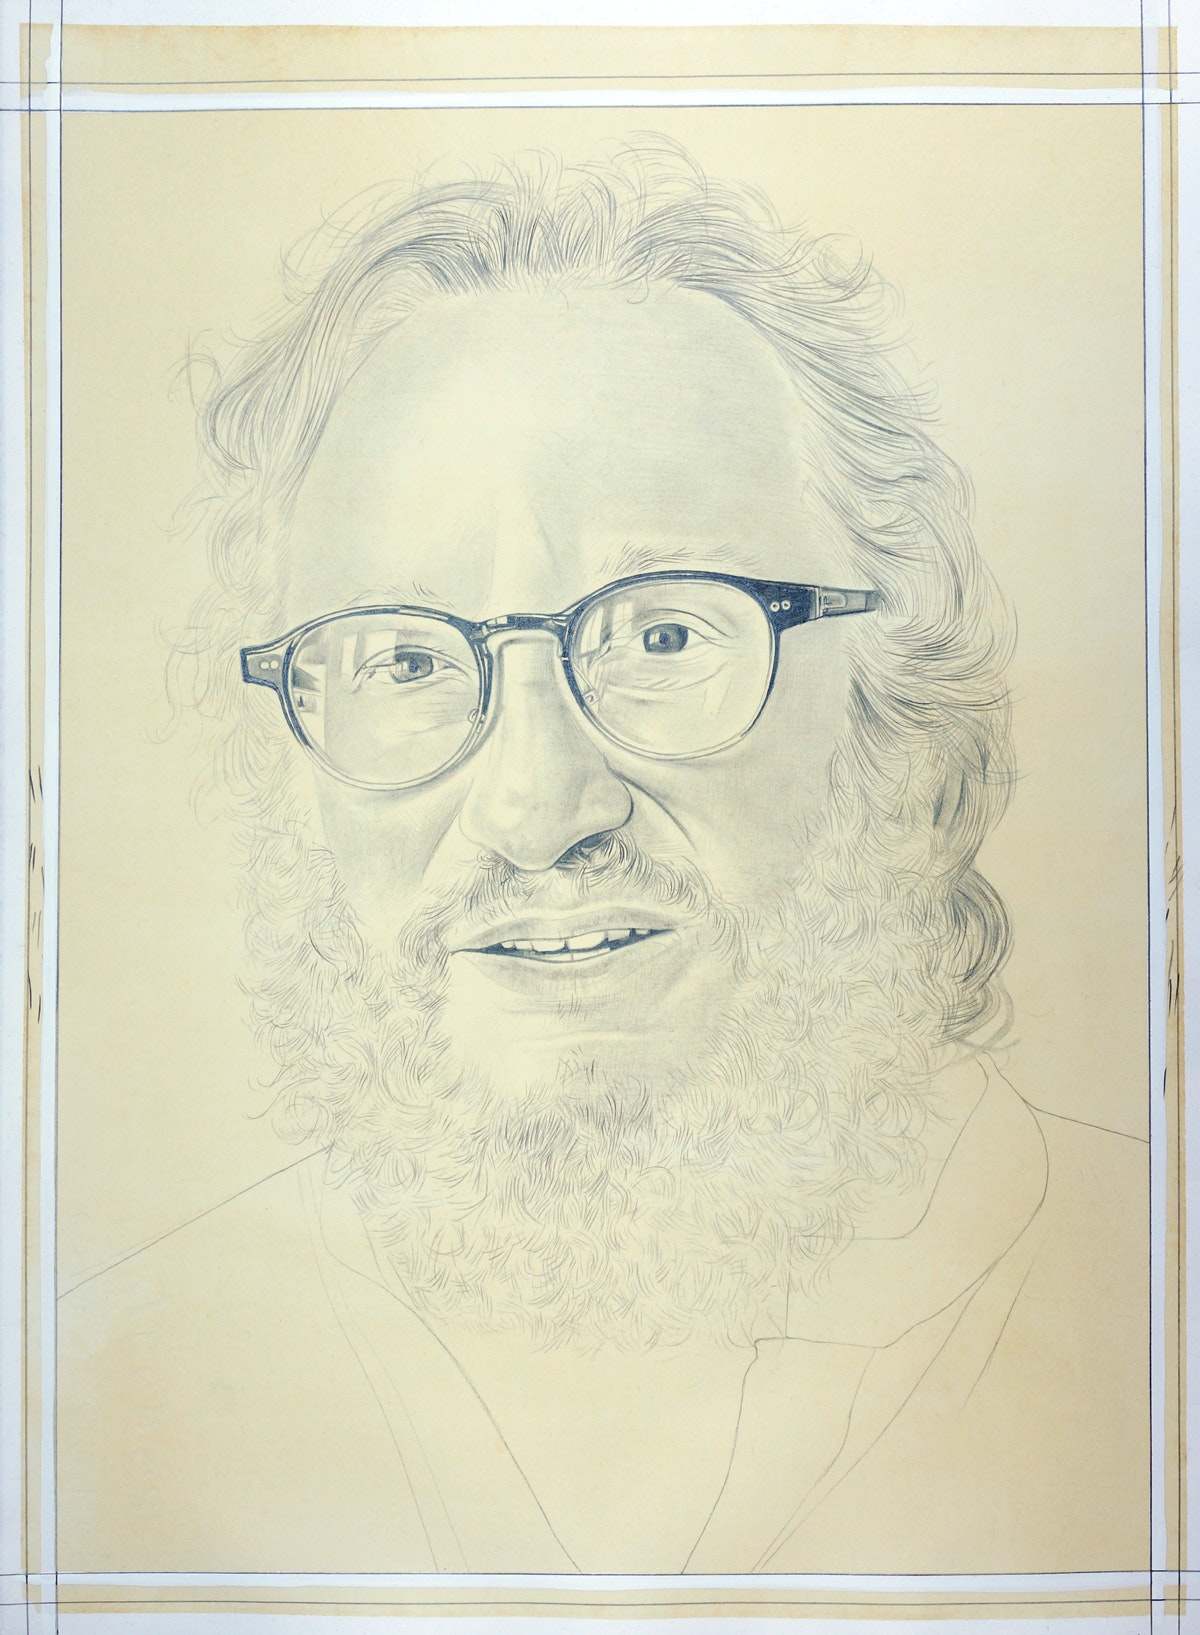 Portrait of Barry Schwabsky, pencil on paper by Phong Bui.